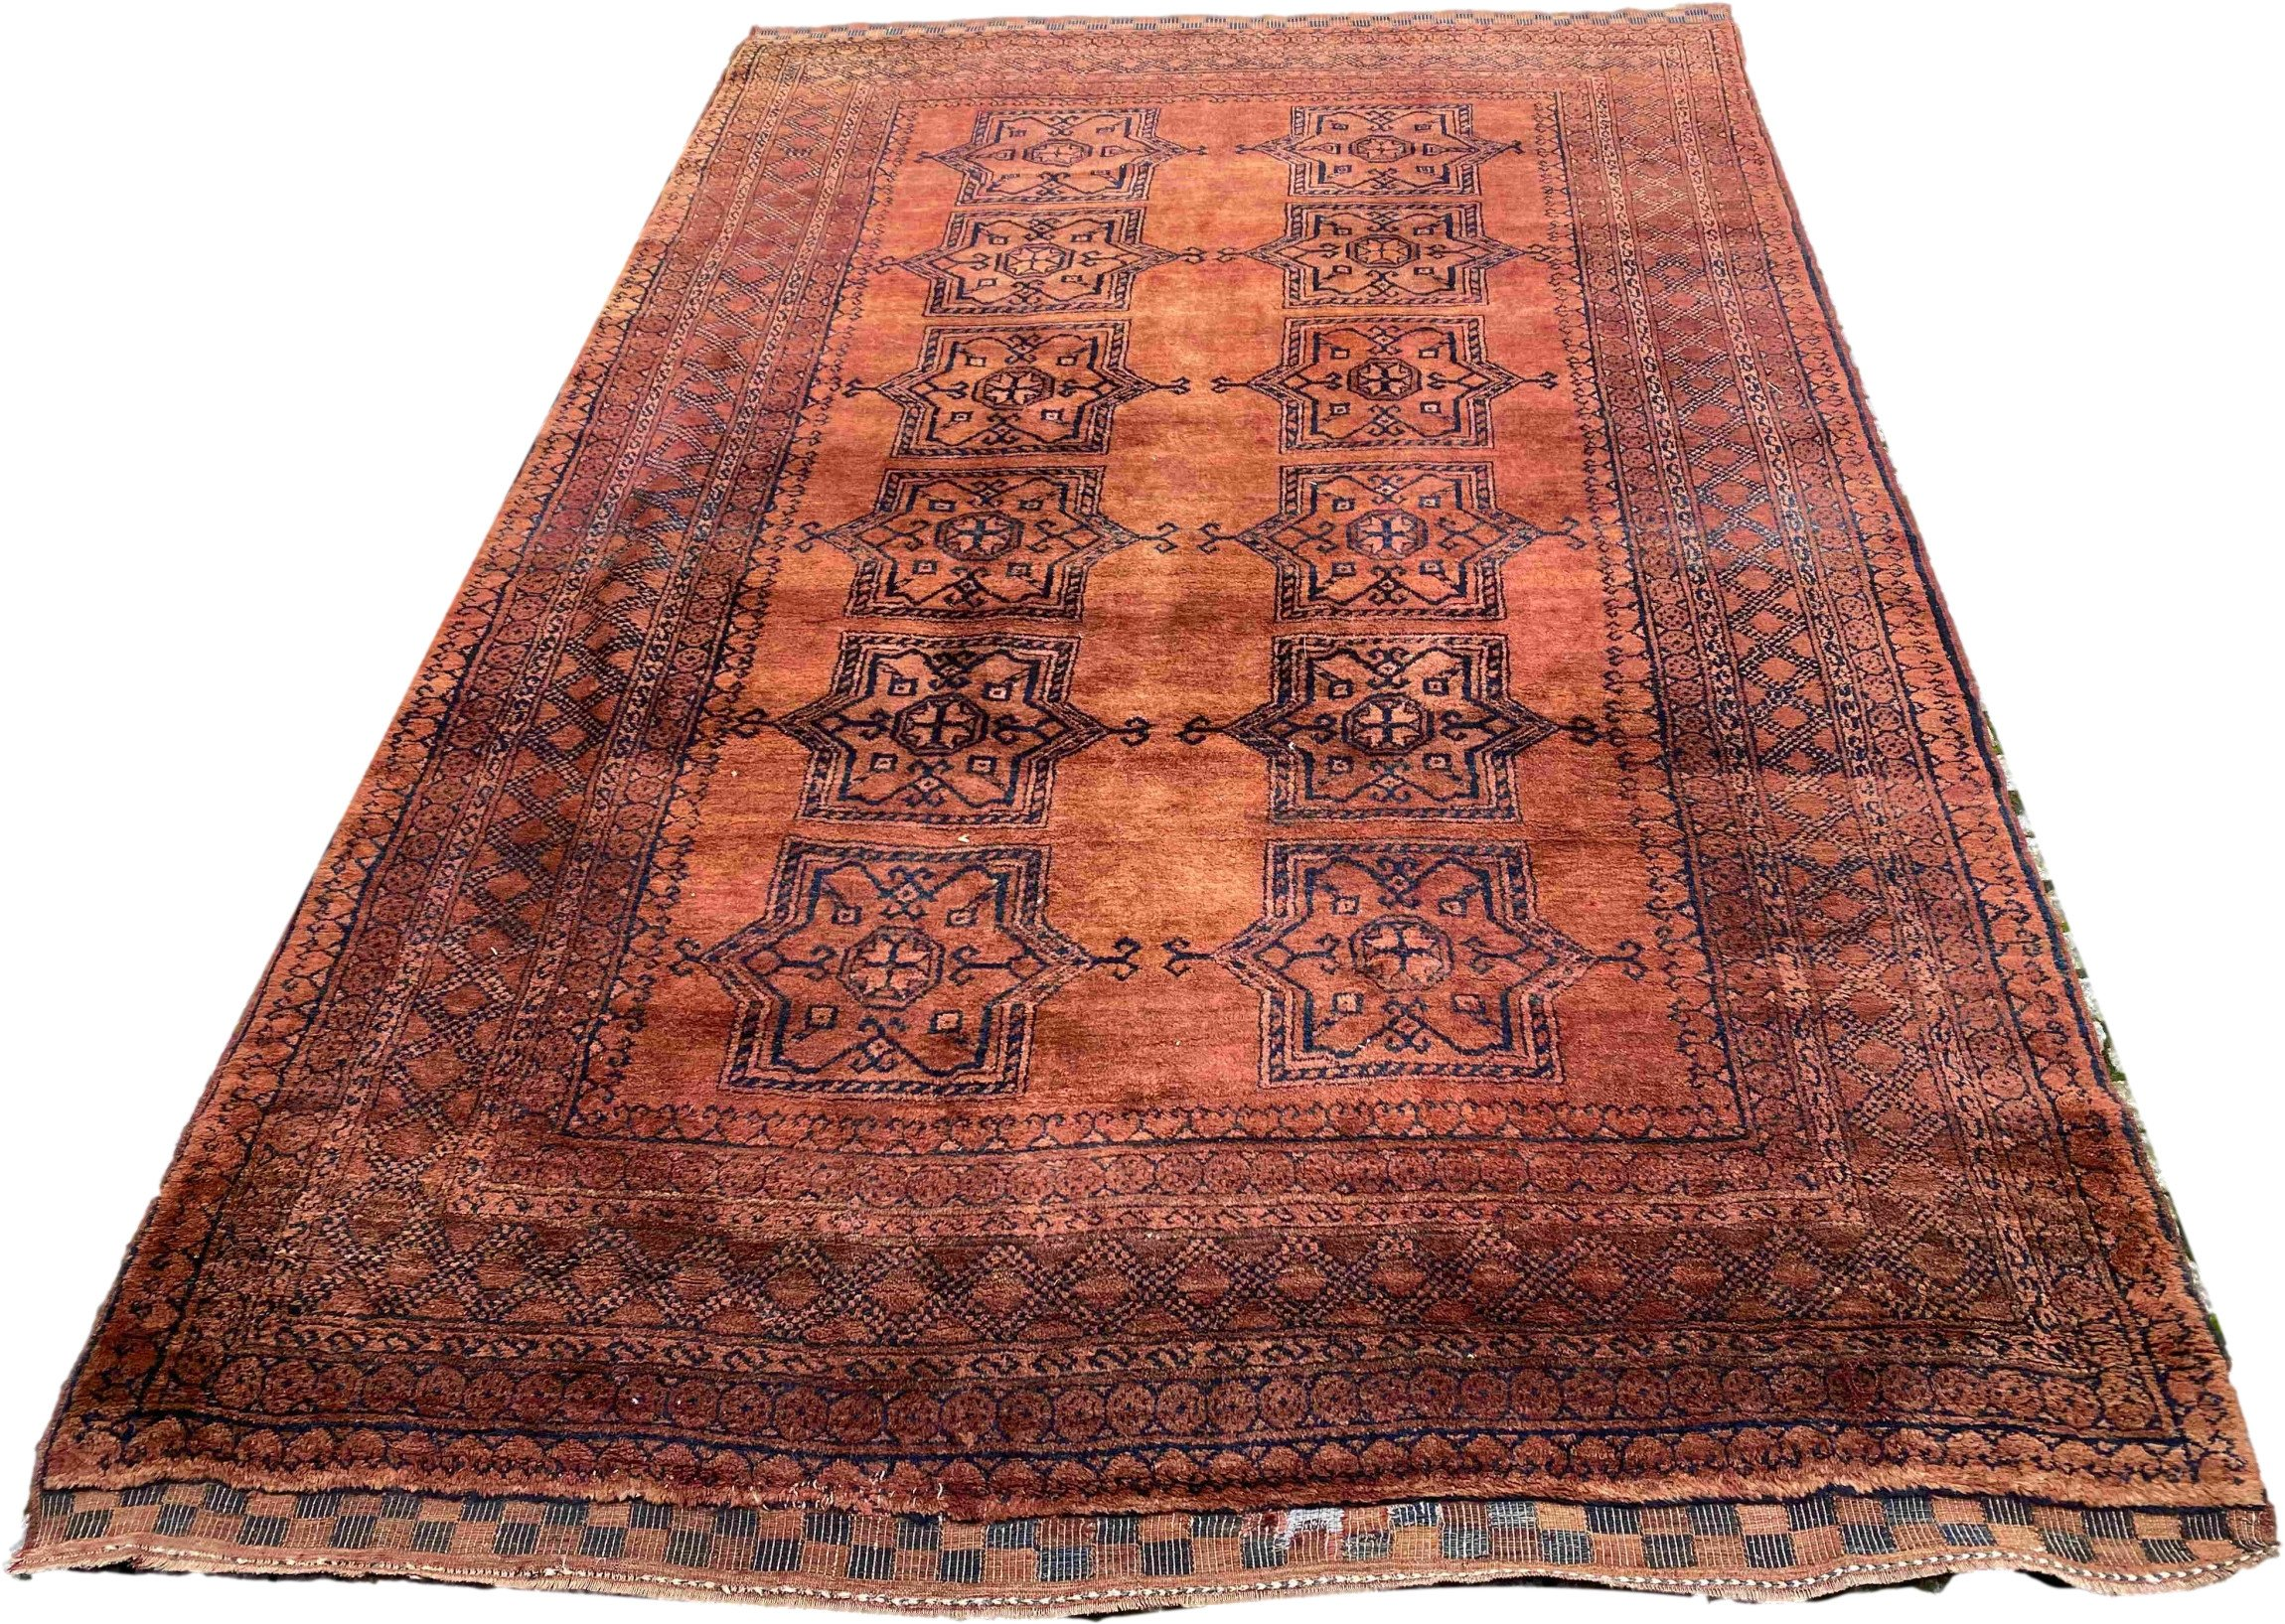 Carpet 210x315, Afghanistan, 1930s